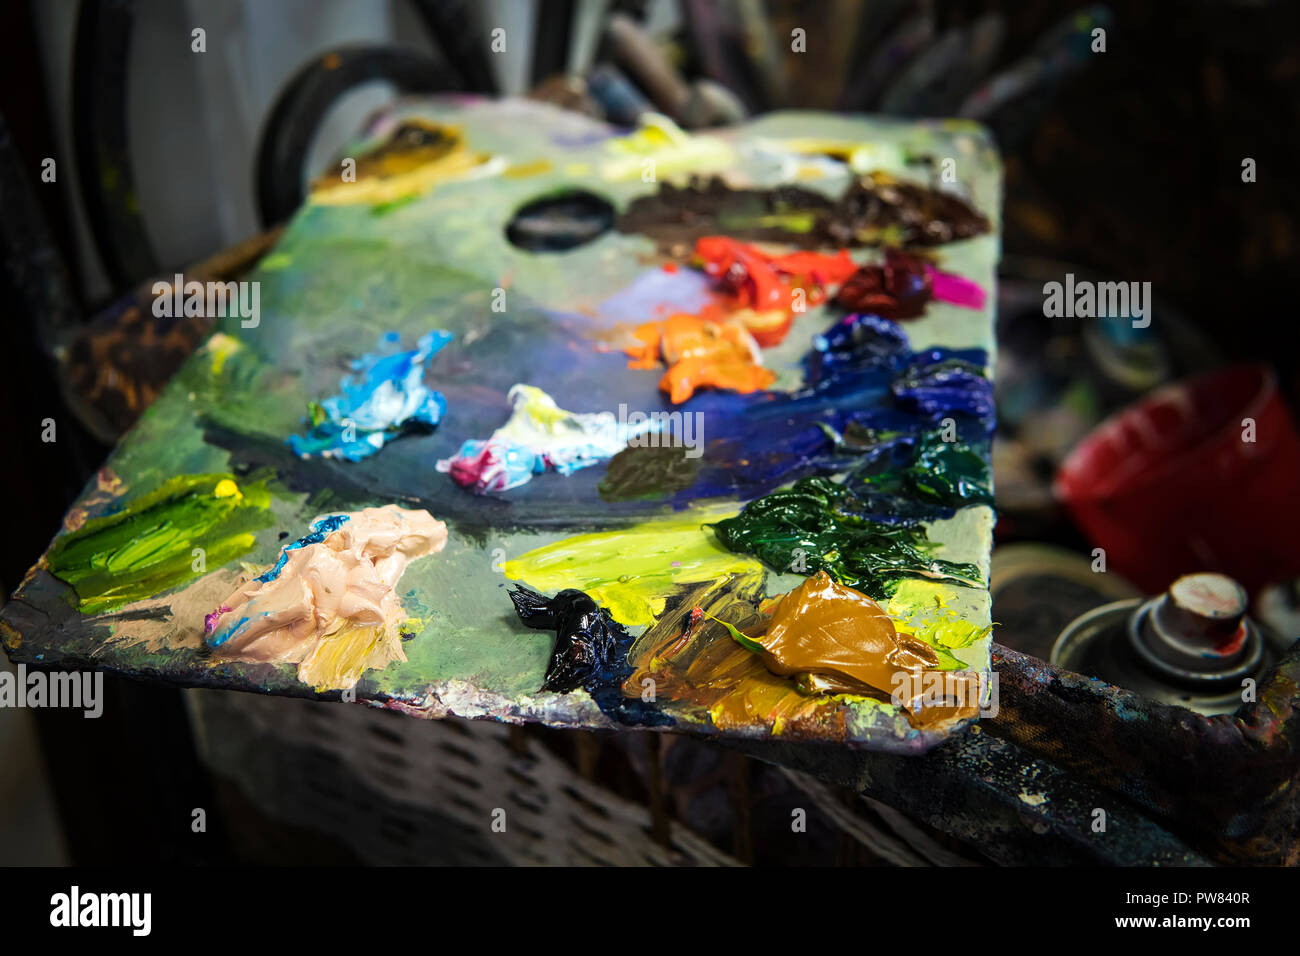 A close up of a varicoloured oil pallette in a painter workroom. An artist's palette consisting of diffrent oil paints. Oils spread over a colour pall - Stock Image